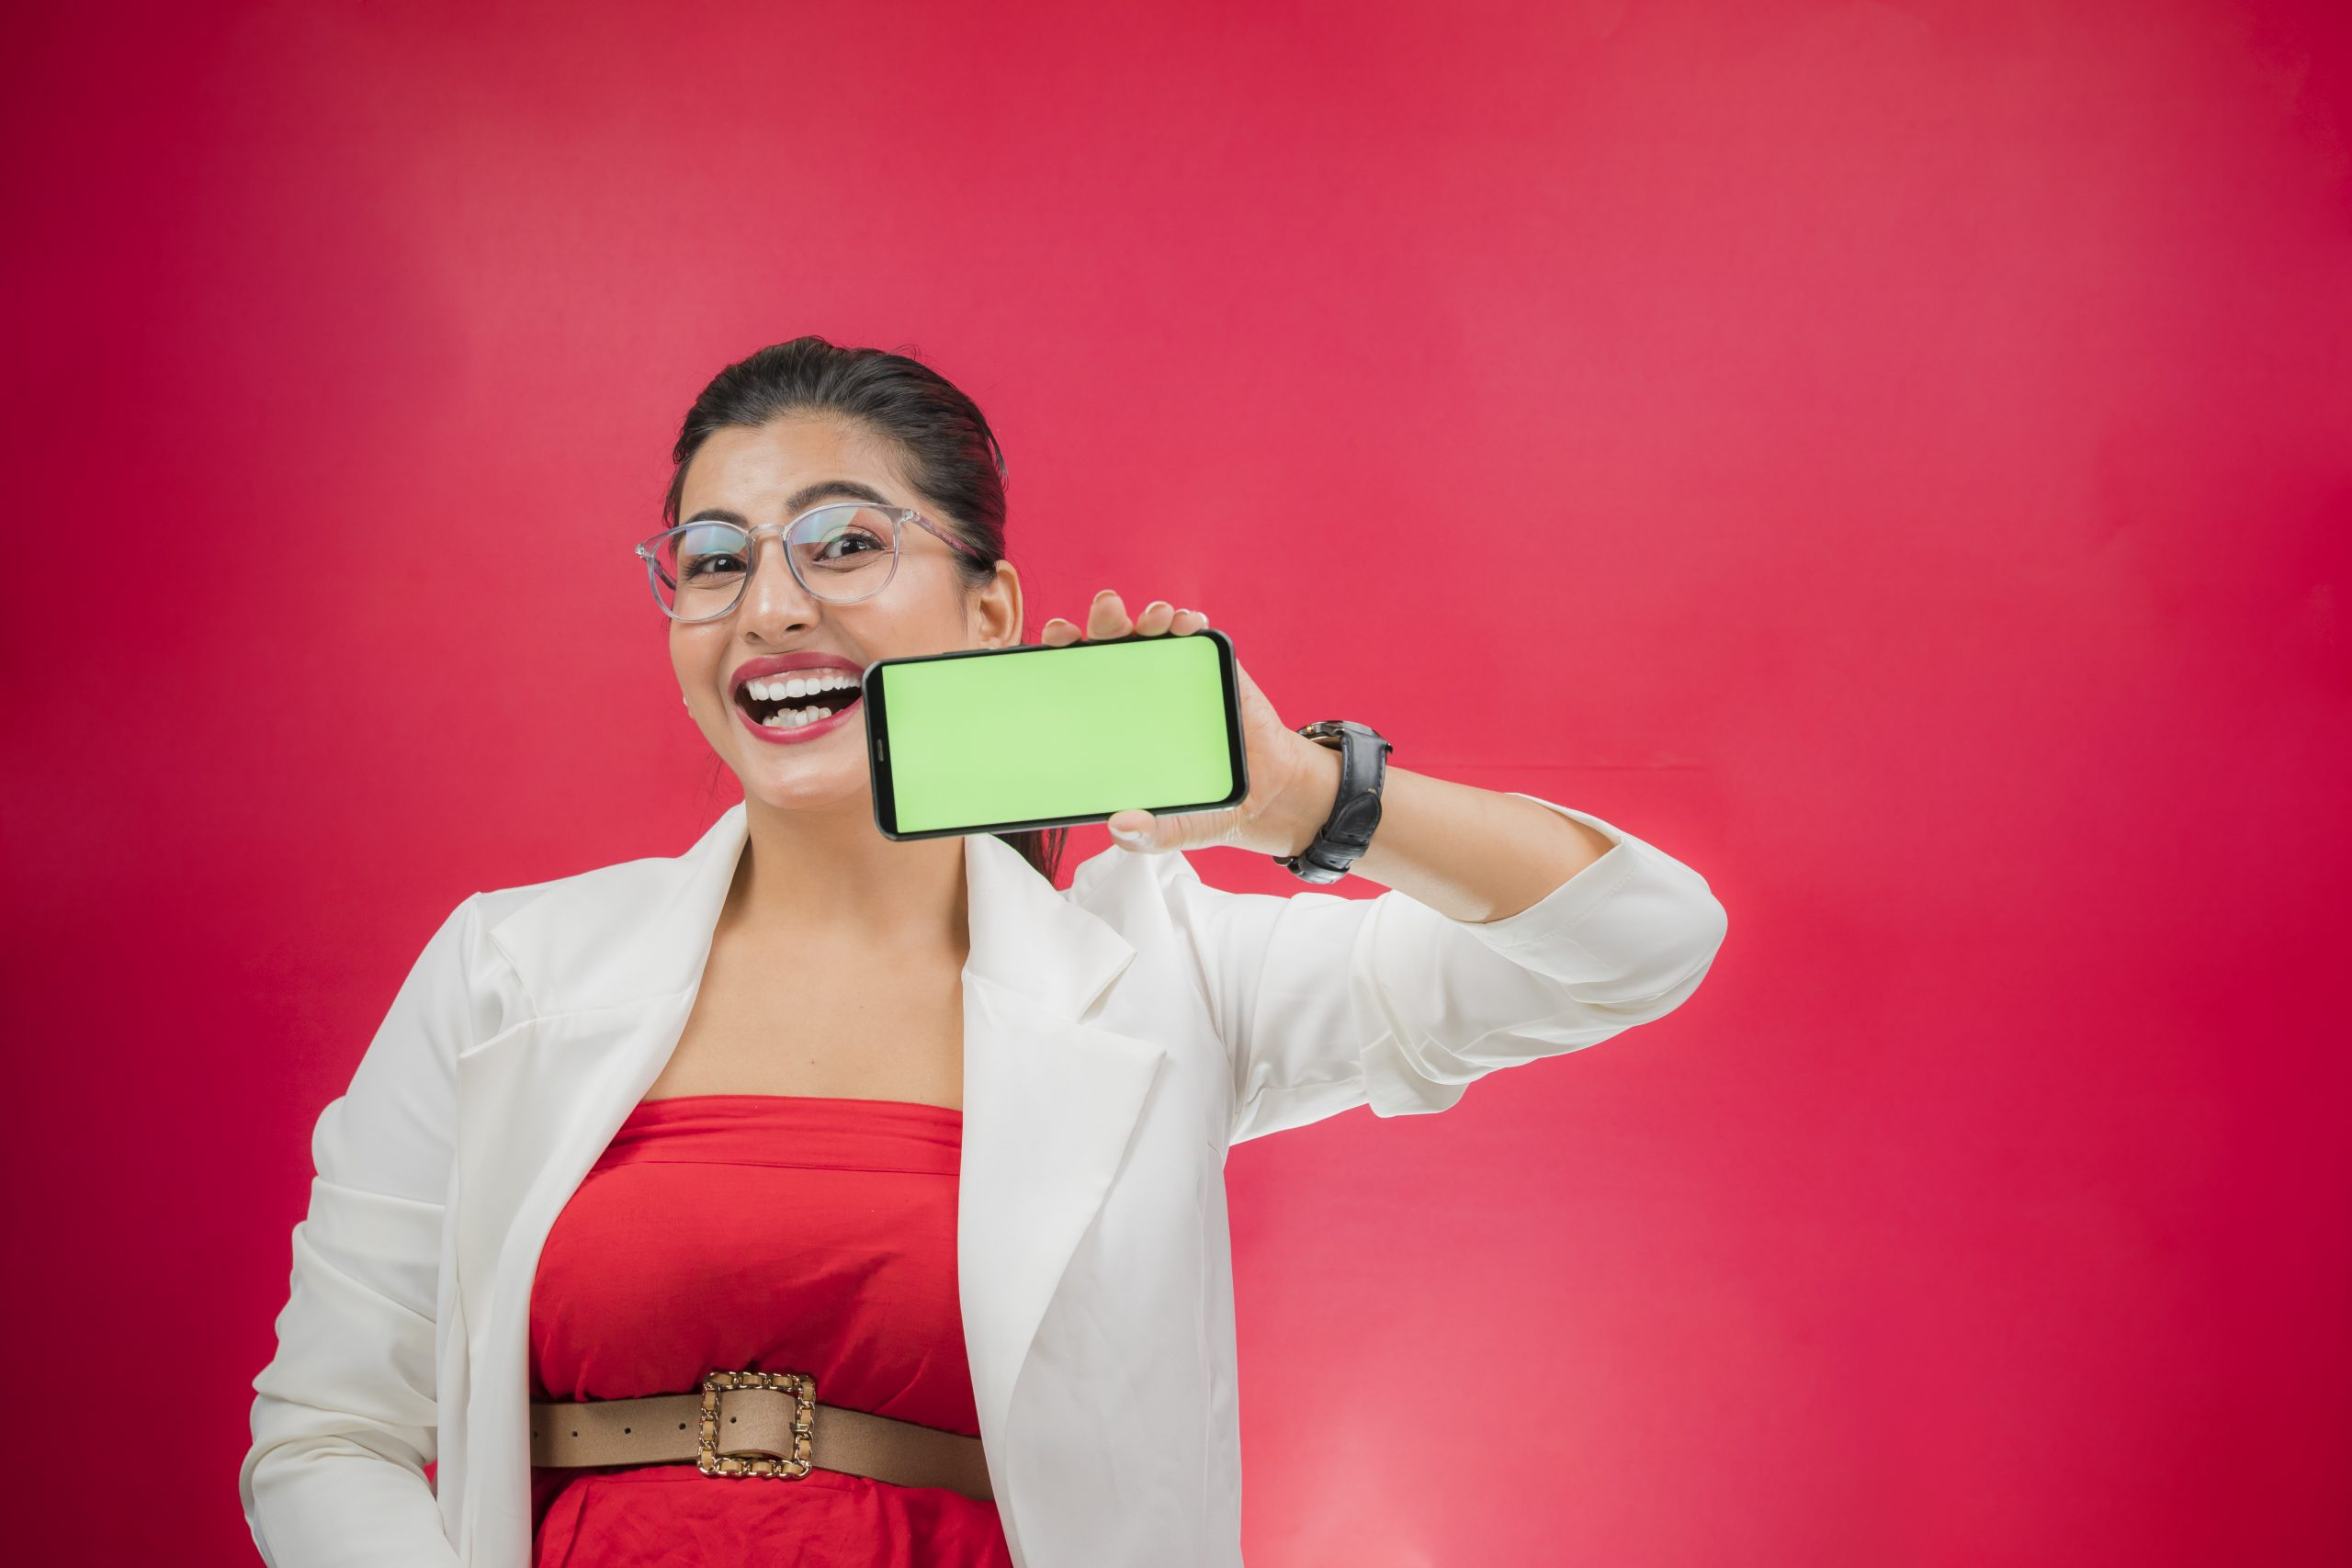 Smiling professional woman showing phone screen